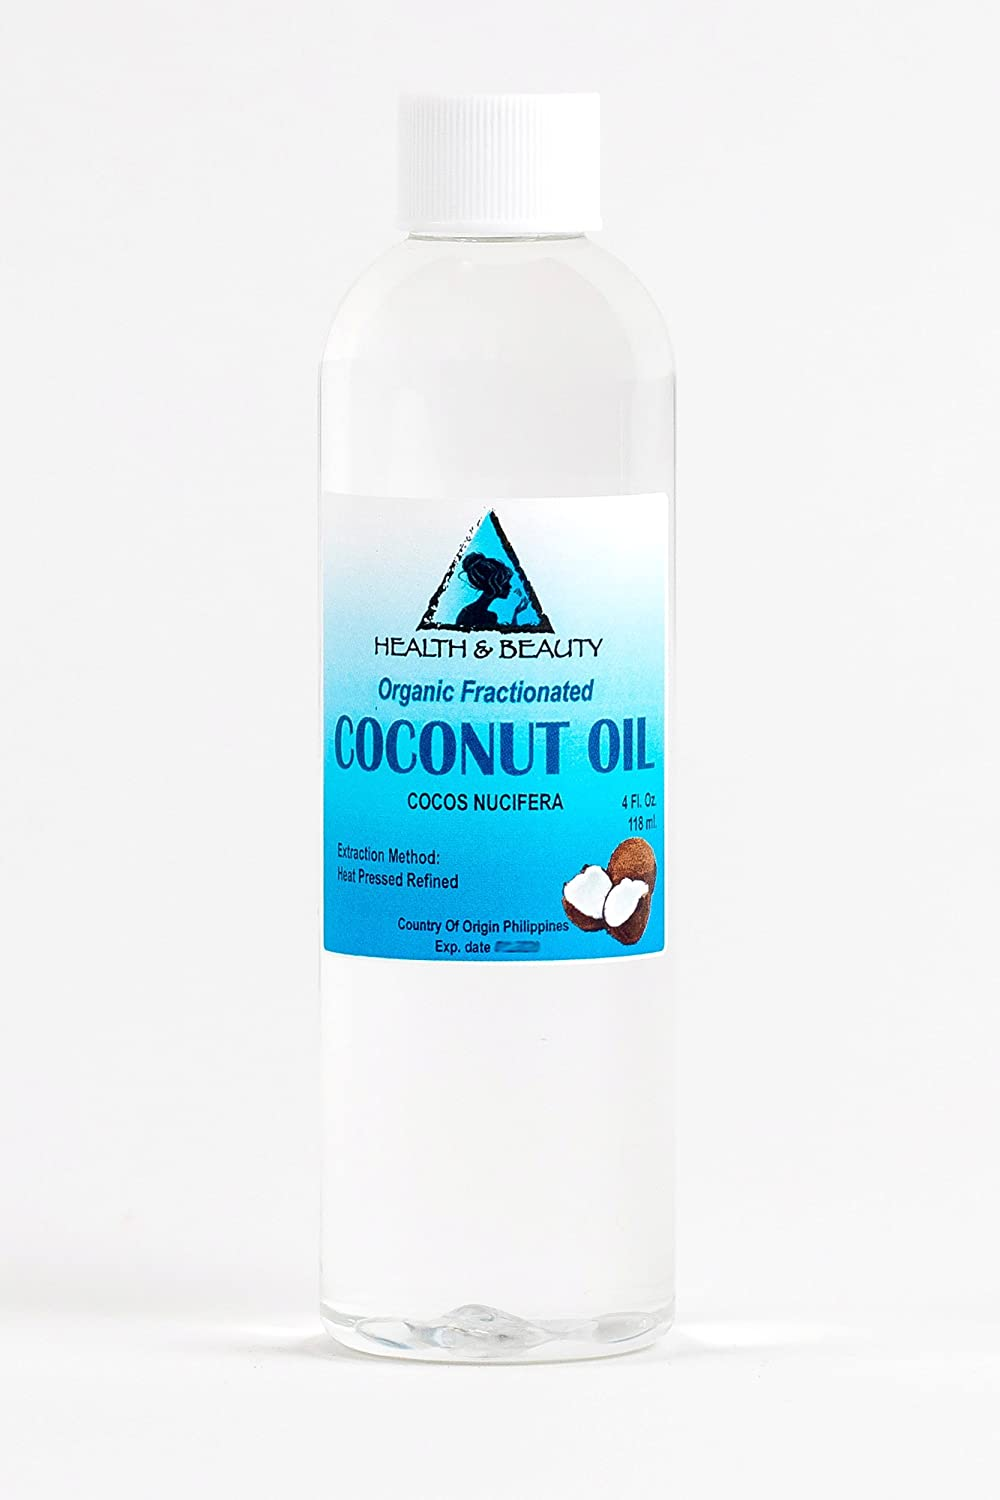 Coconut Oil Fractionated Organic Carrier Ultra Refined Premium 100% Pure 4 oz, 118 ml H&B OILS CENTER Co.